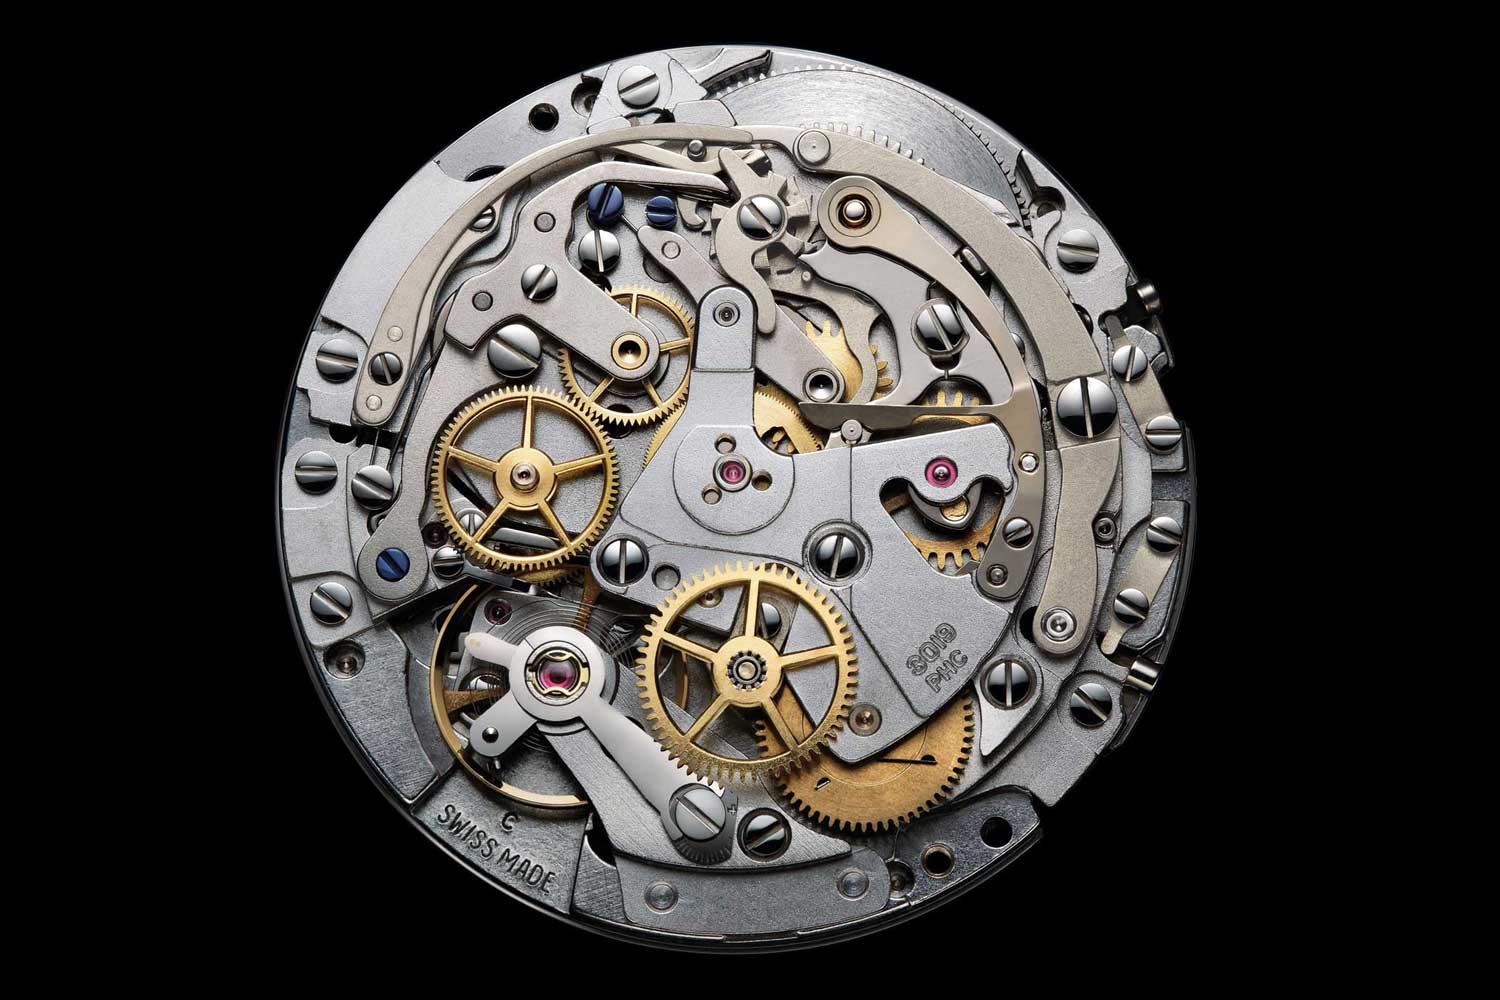 A vast majority of mechanical chronographs sold today use the Valjoux 7750, which was introduced in 1974, or variants of this movement.